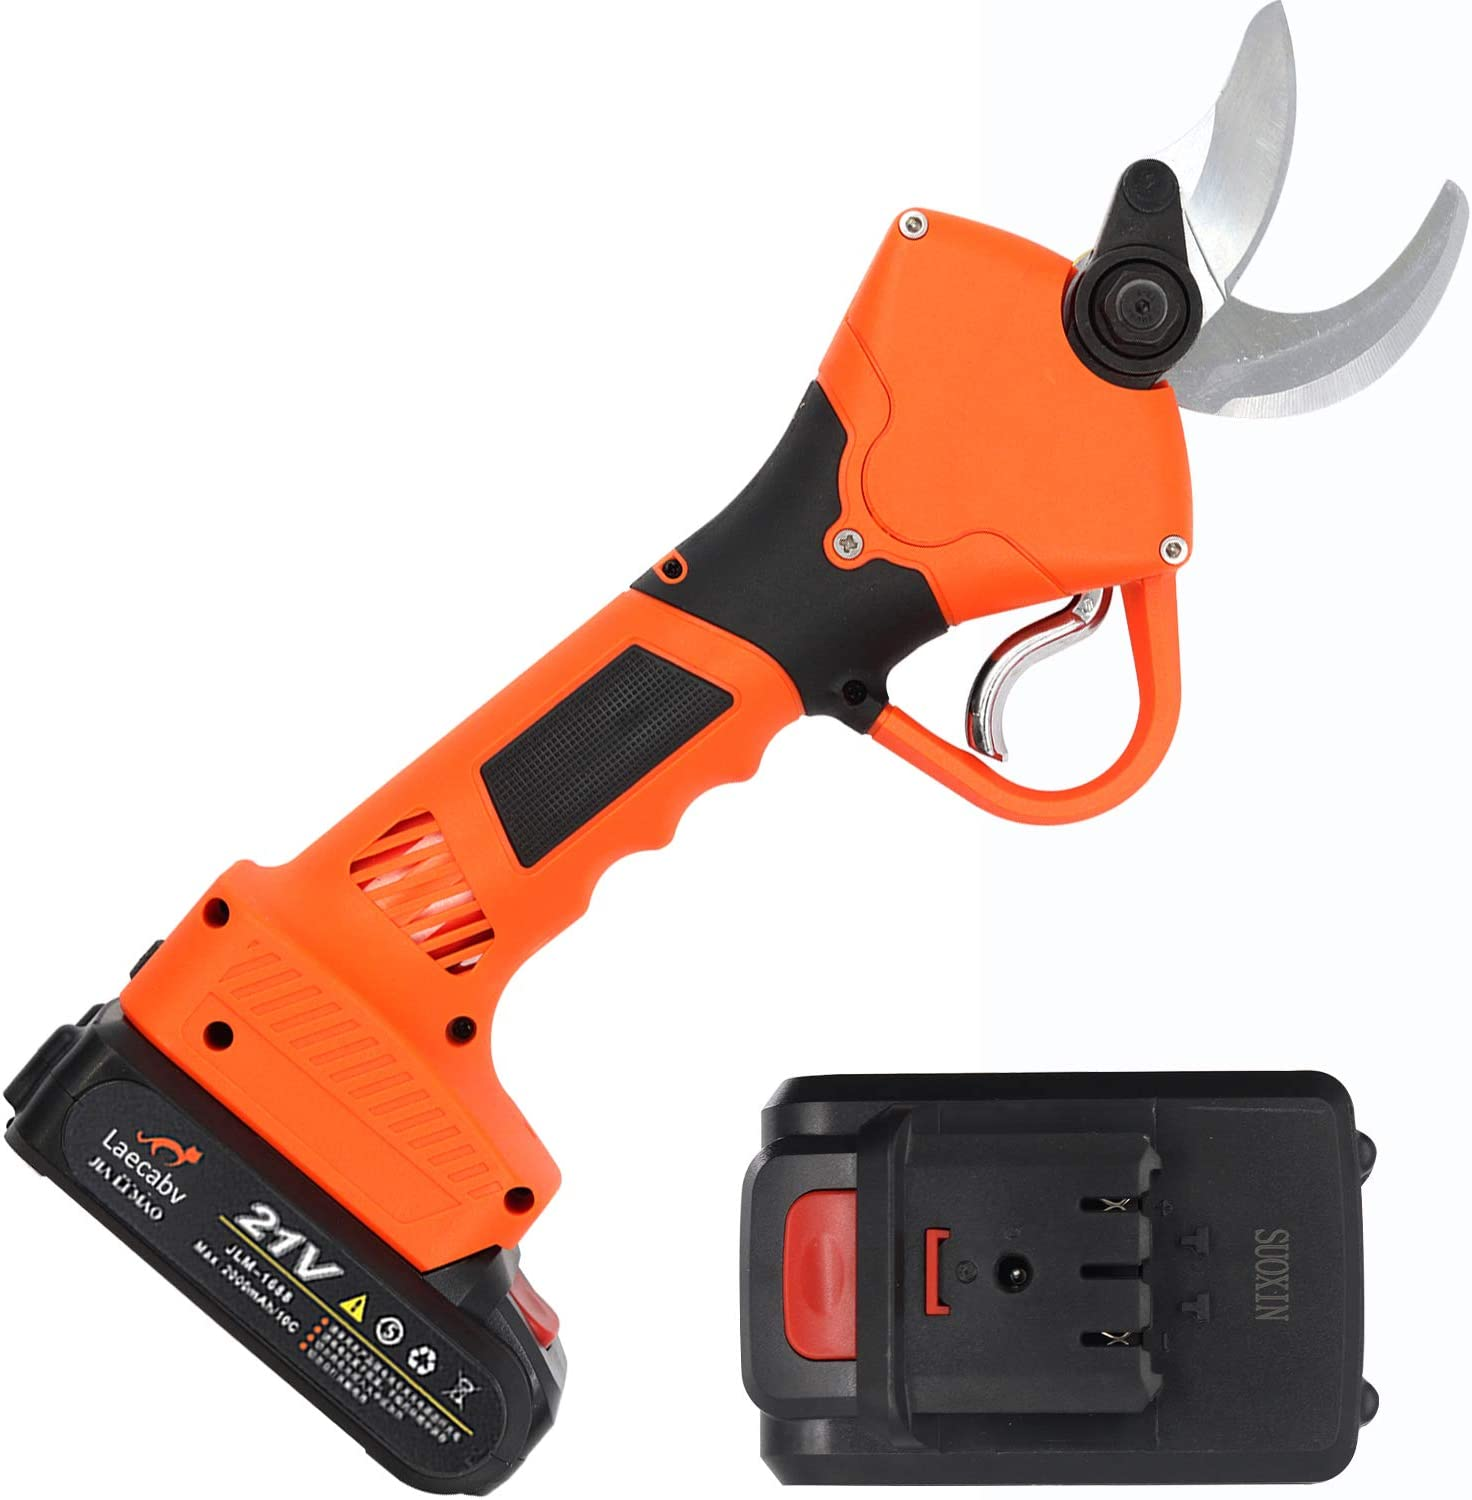 Laecabv Professional Electric Branch National products Easy-to-use Cordless S Scissors Pruning